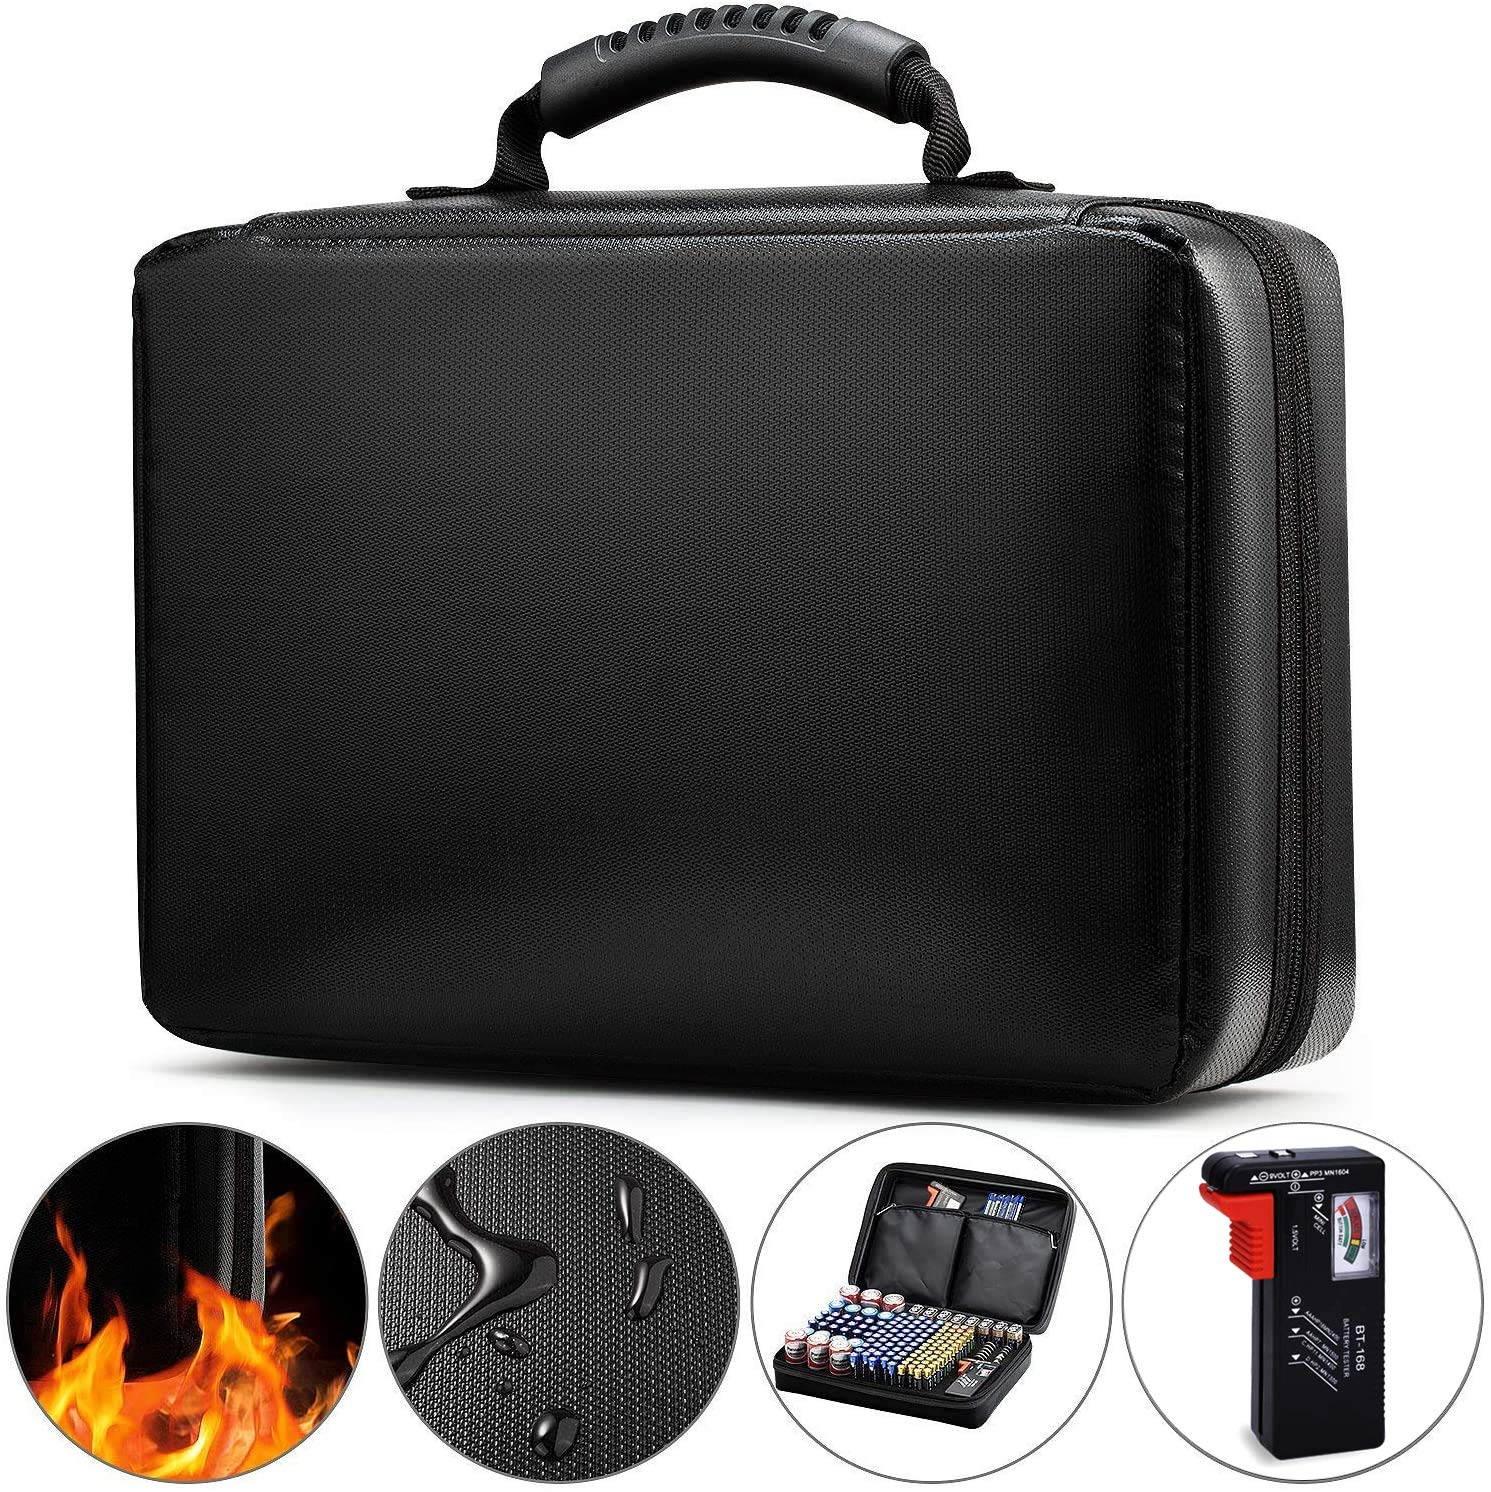 Anyoneer Battery Organizer Storage Box, Fireproof, Waterproof, Extra Large Hard Carrying Case with Zippers - Holds 200+ Batteries AA AAA C D 9V - Battery Storage Case, with Battery Tester BT-168